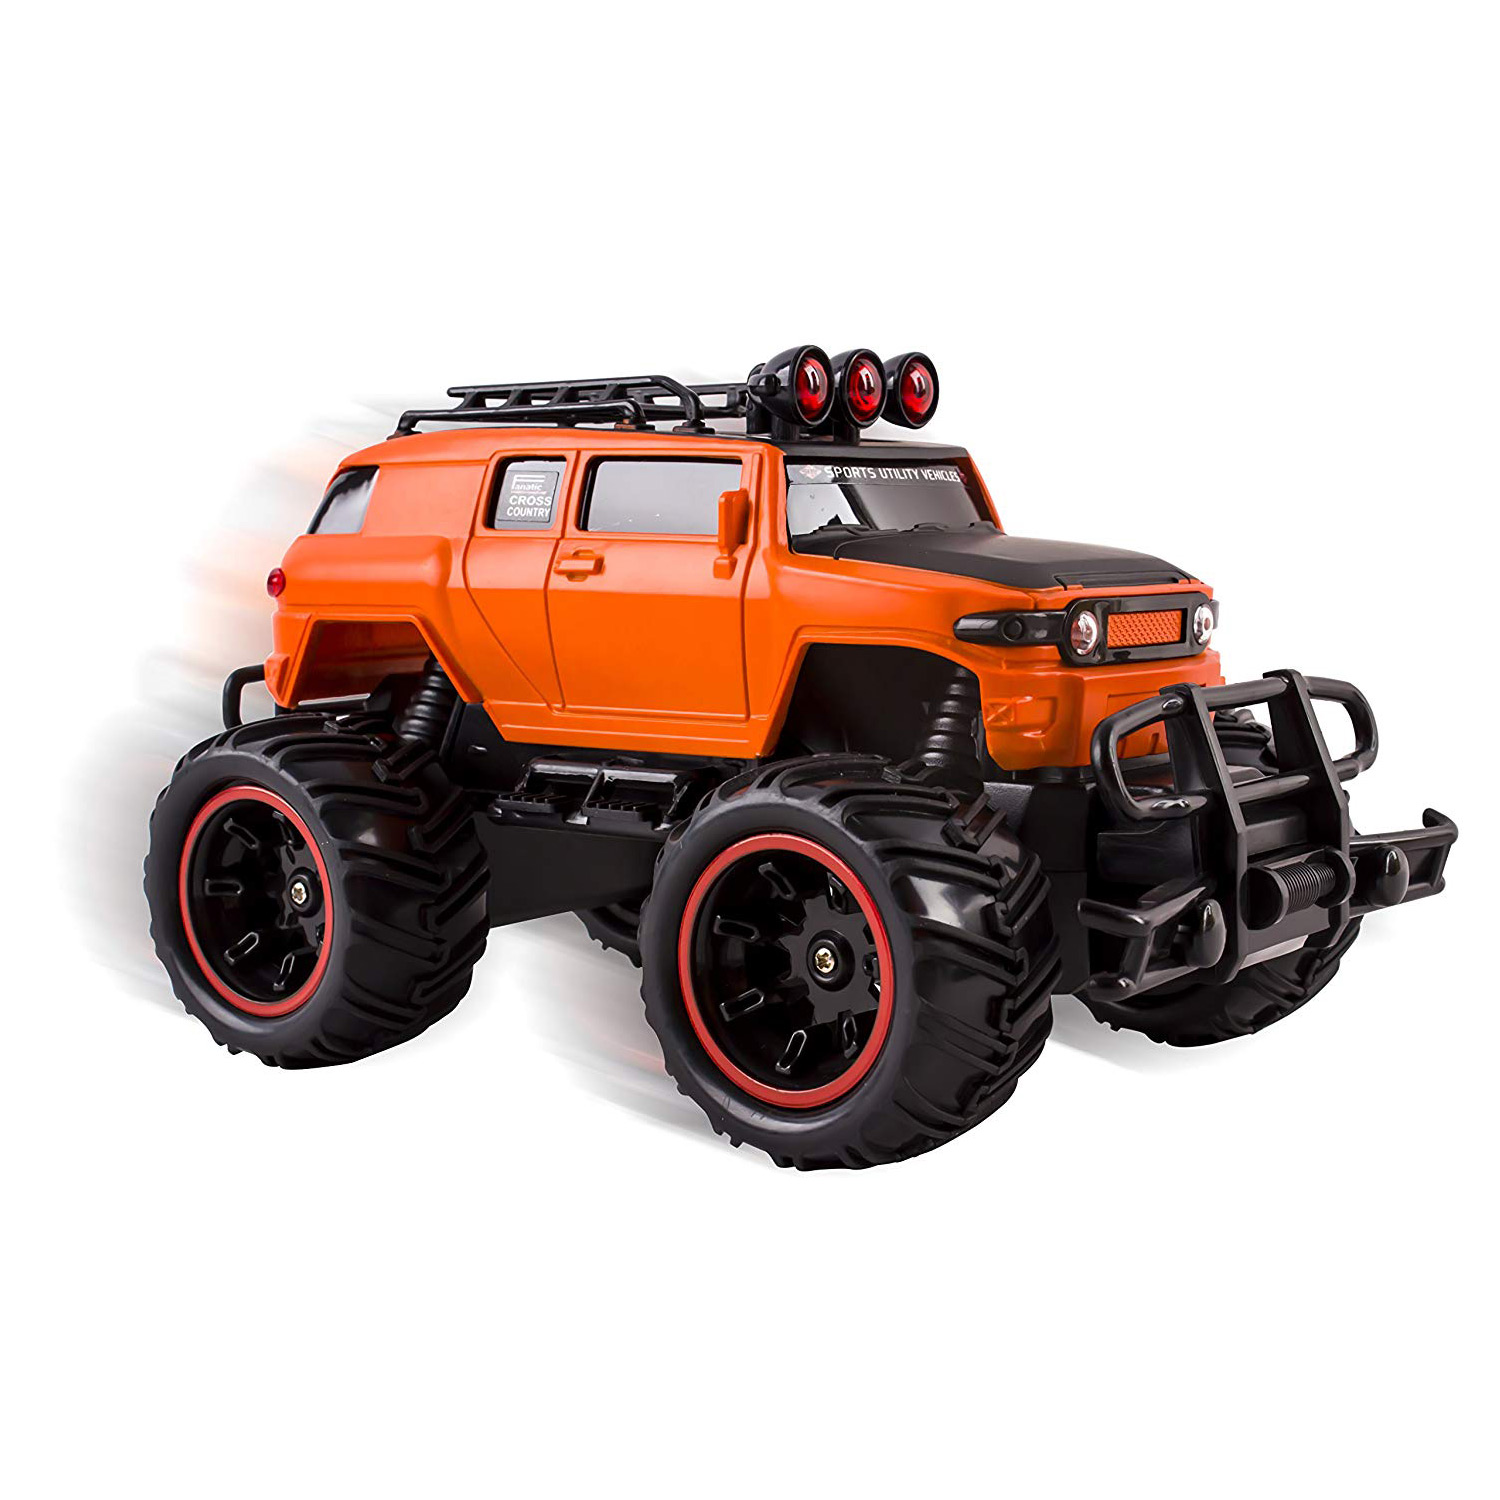 Rc Monster Truck Toy Remote Control Rtr Electric Vehicle Off Road High Speed Race Car 1 20 Scale Radio Controlled Orange Color Zoominos Online Toy Store Affordable Toys For Kids